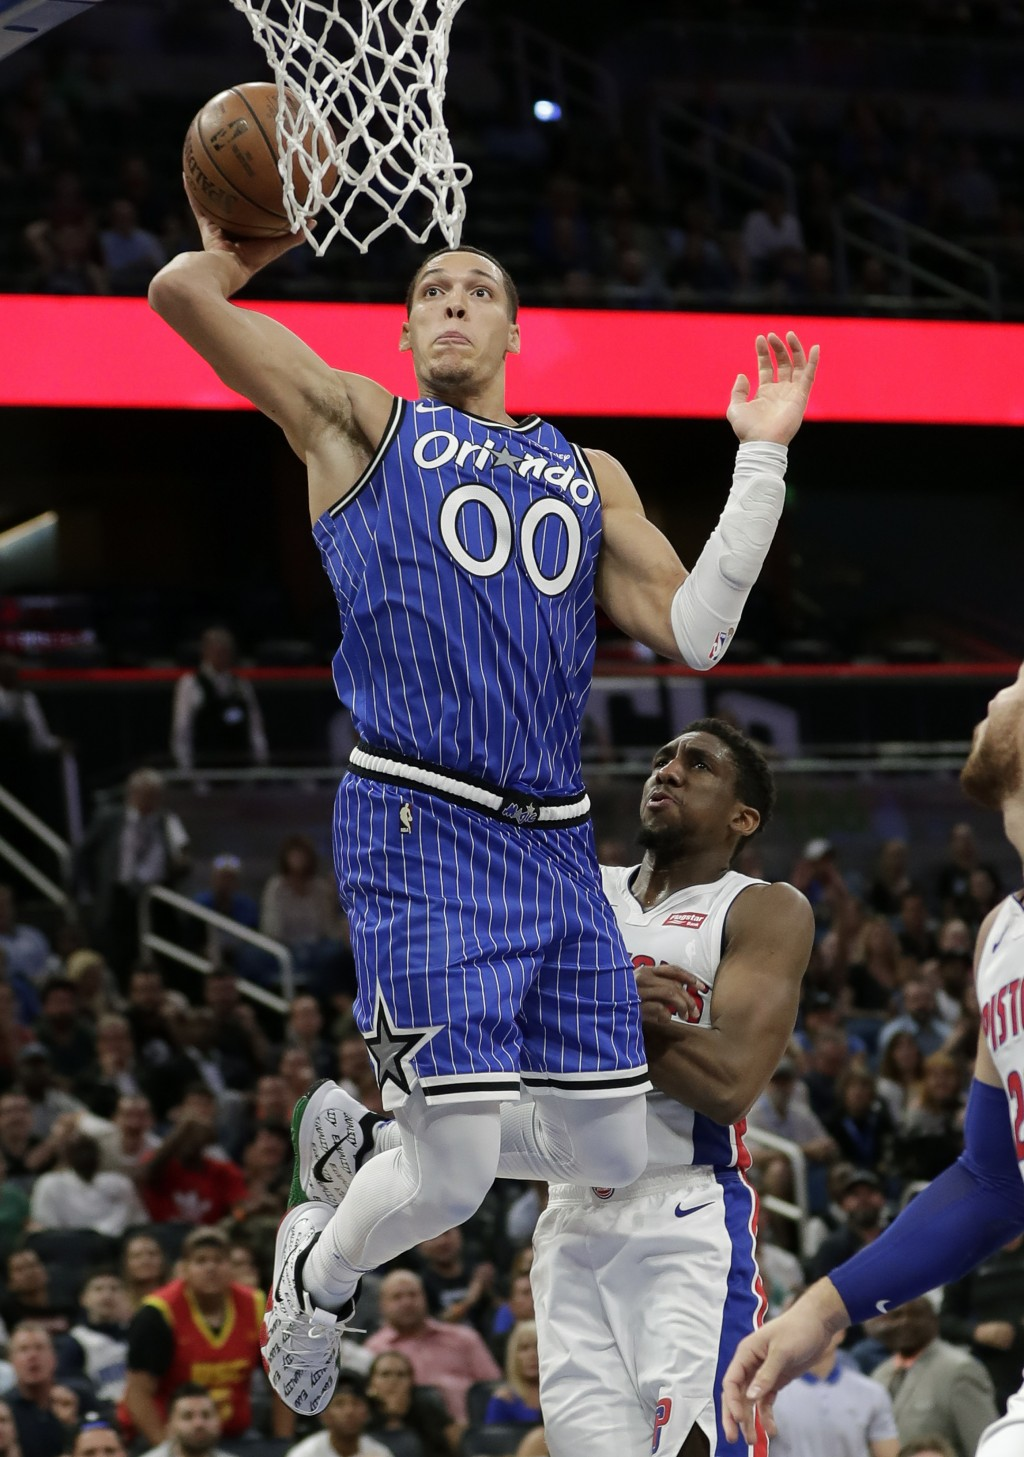 Orlando Magic's Aaron Gordon (00) goes up to dunk over Detroit Pistons' Langston Galloway, right, during the second half of an NBA basketball game, We...